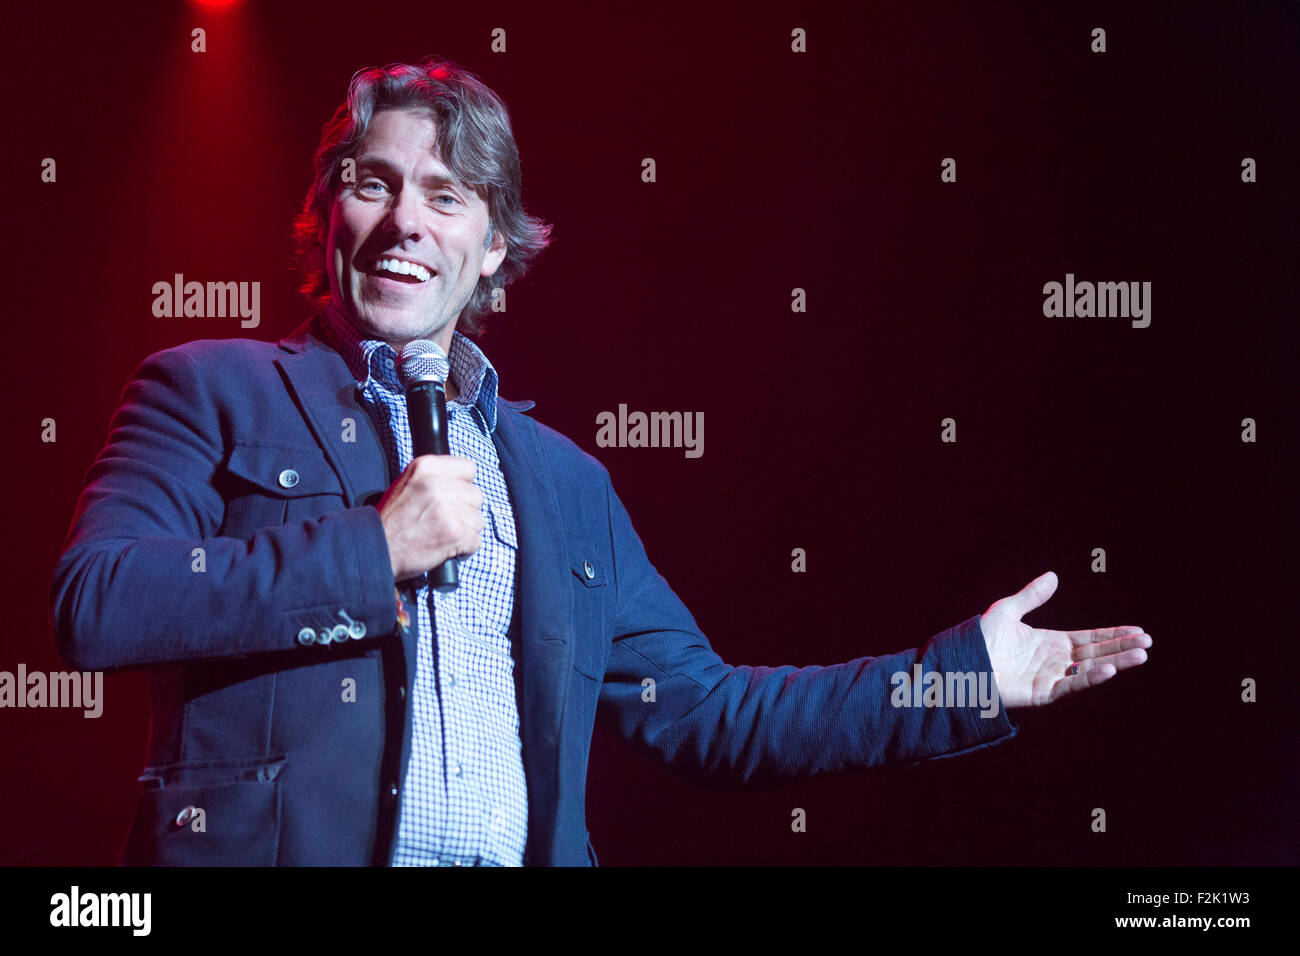 19/9/15 With Love From Liverpool Concert. Comedian John Bishop - Stock Image